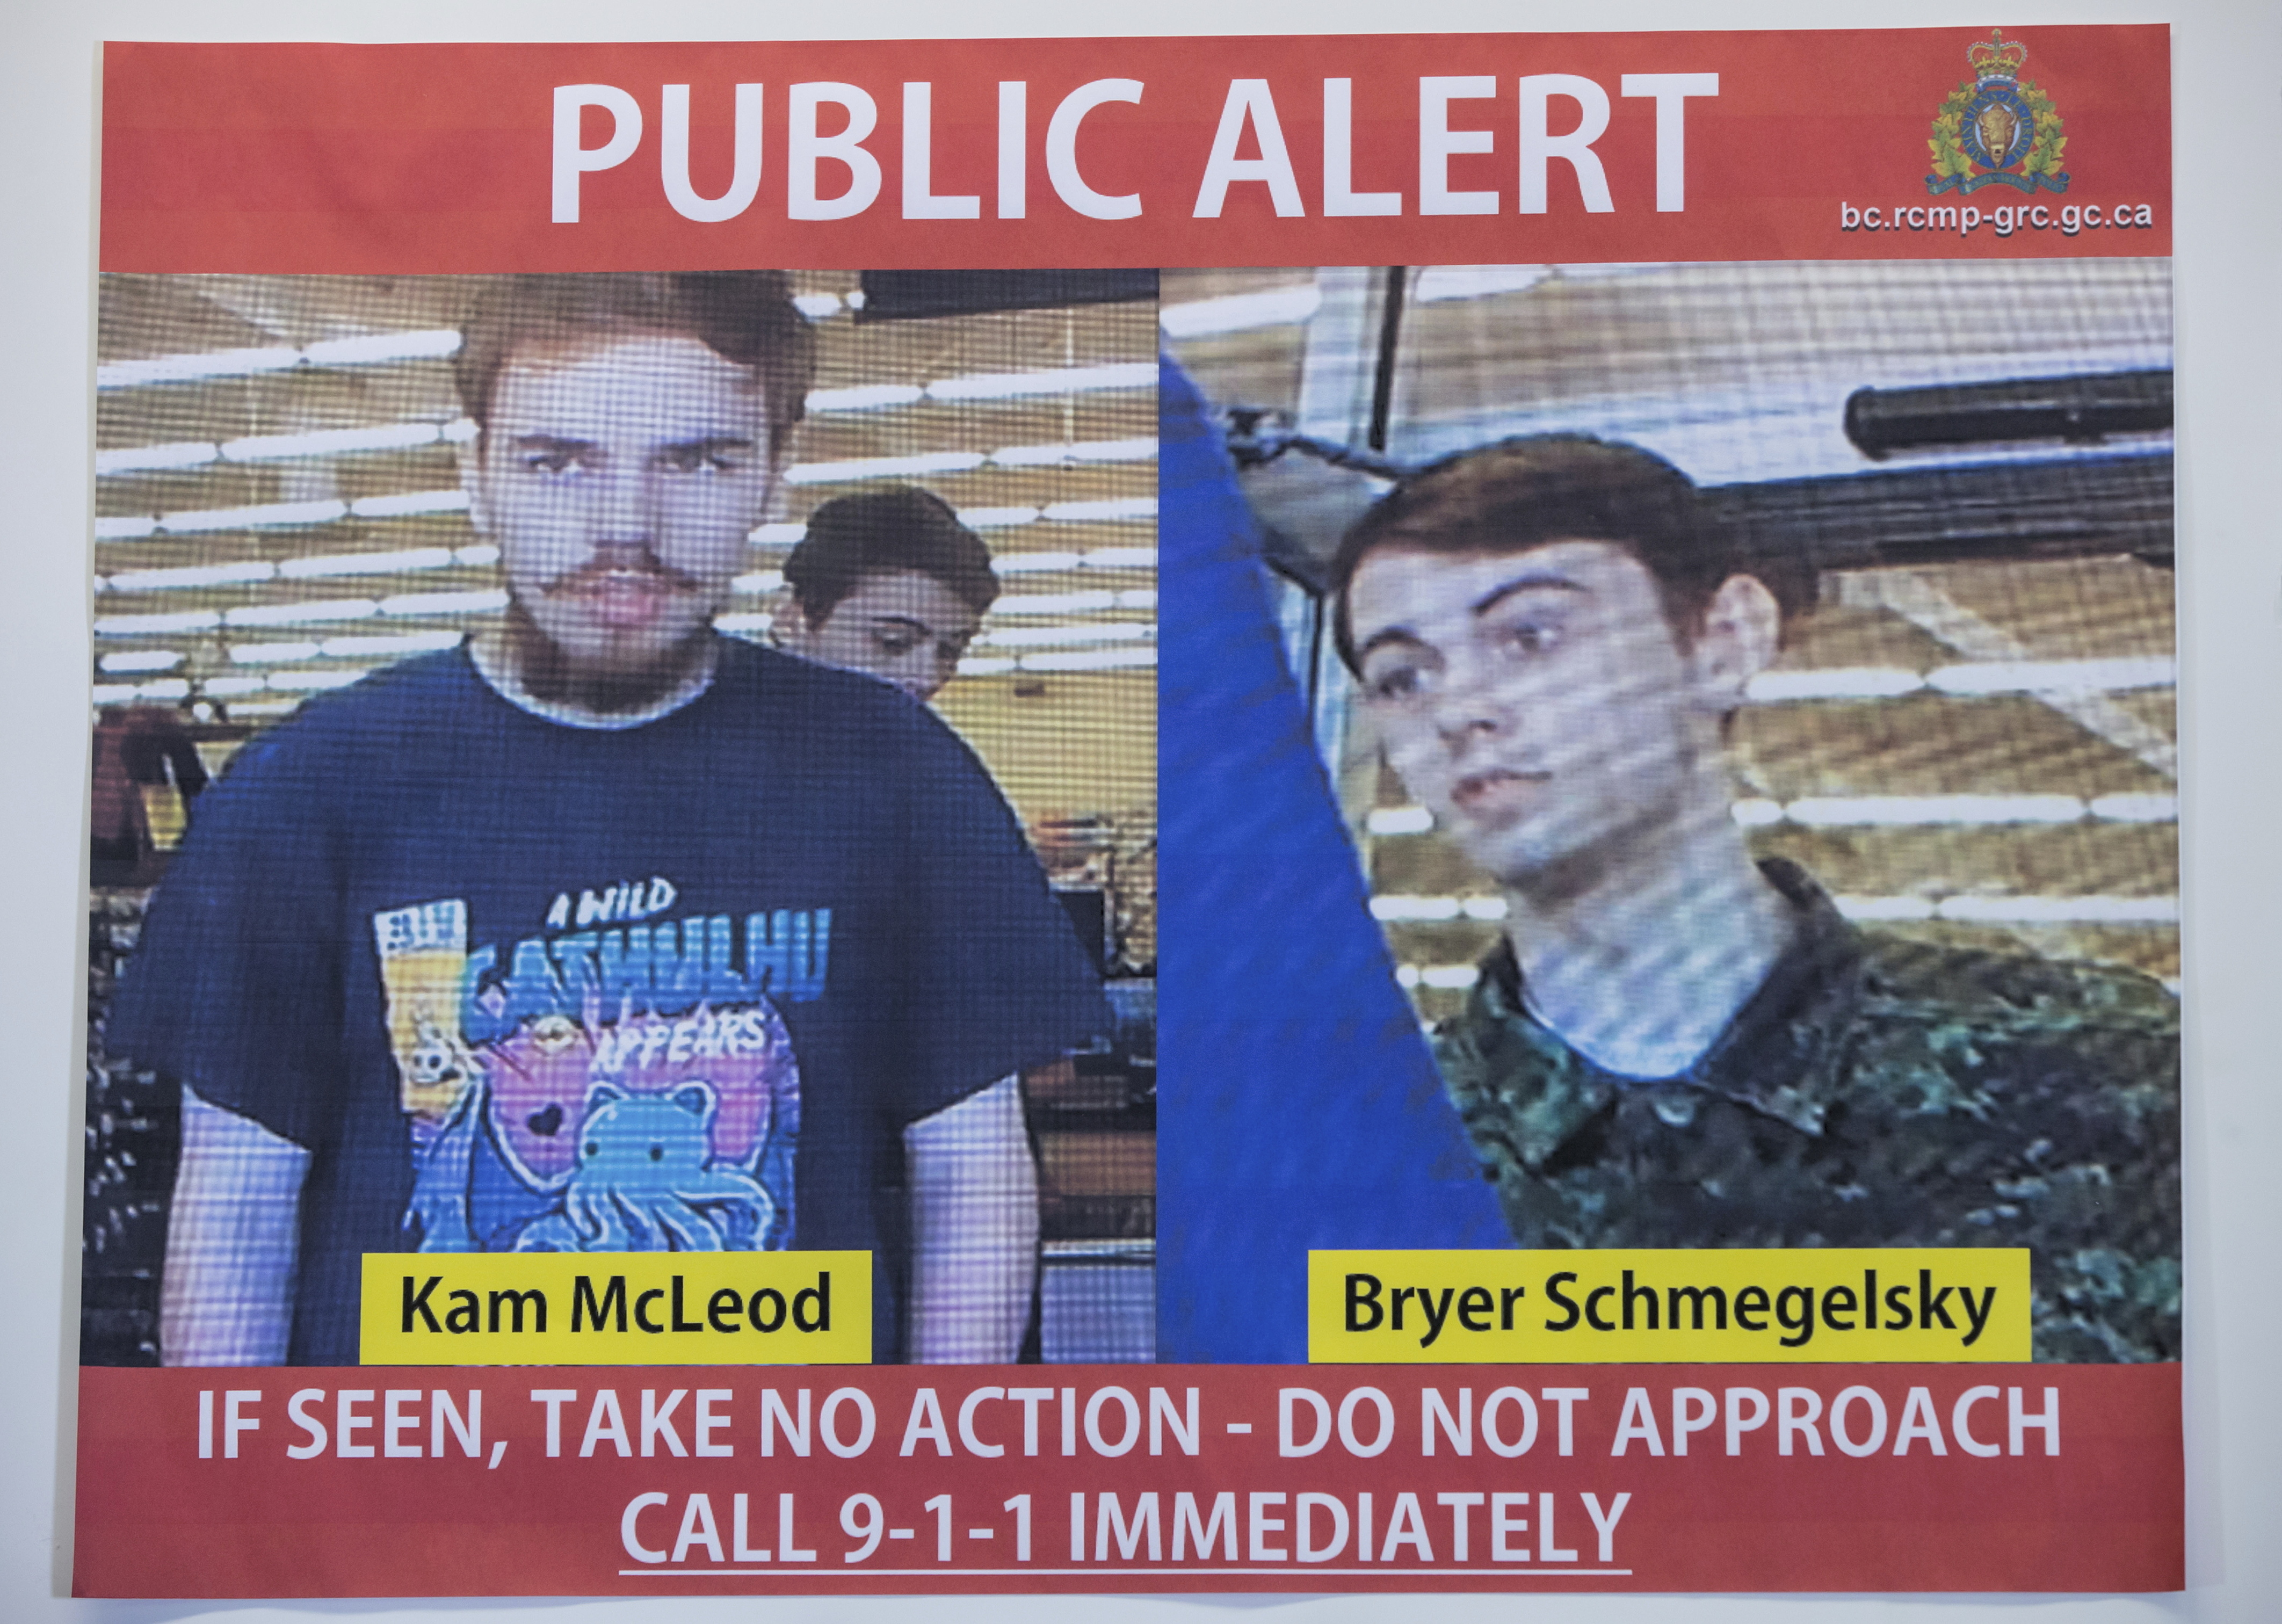 Canadian police: 2 fugitives died by suicide